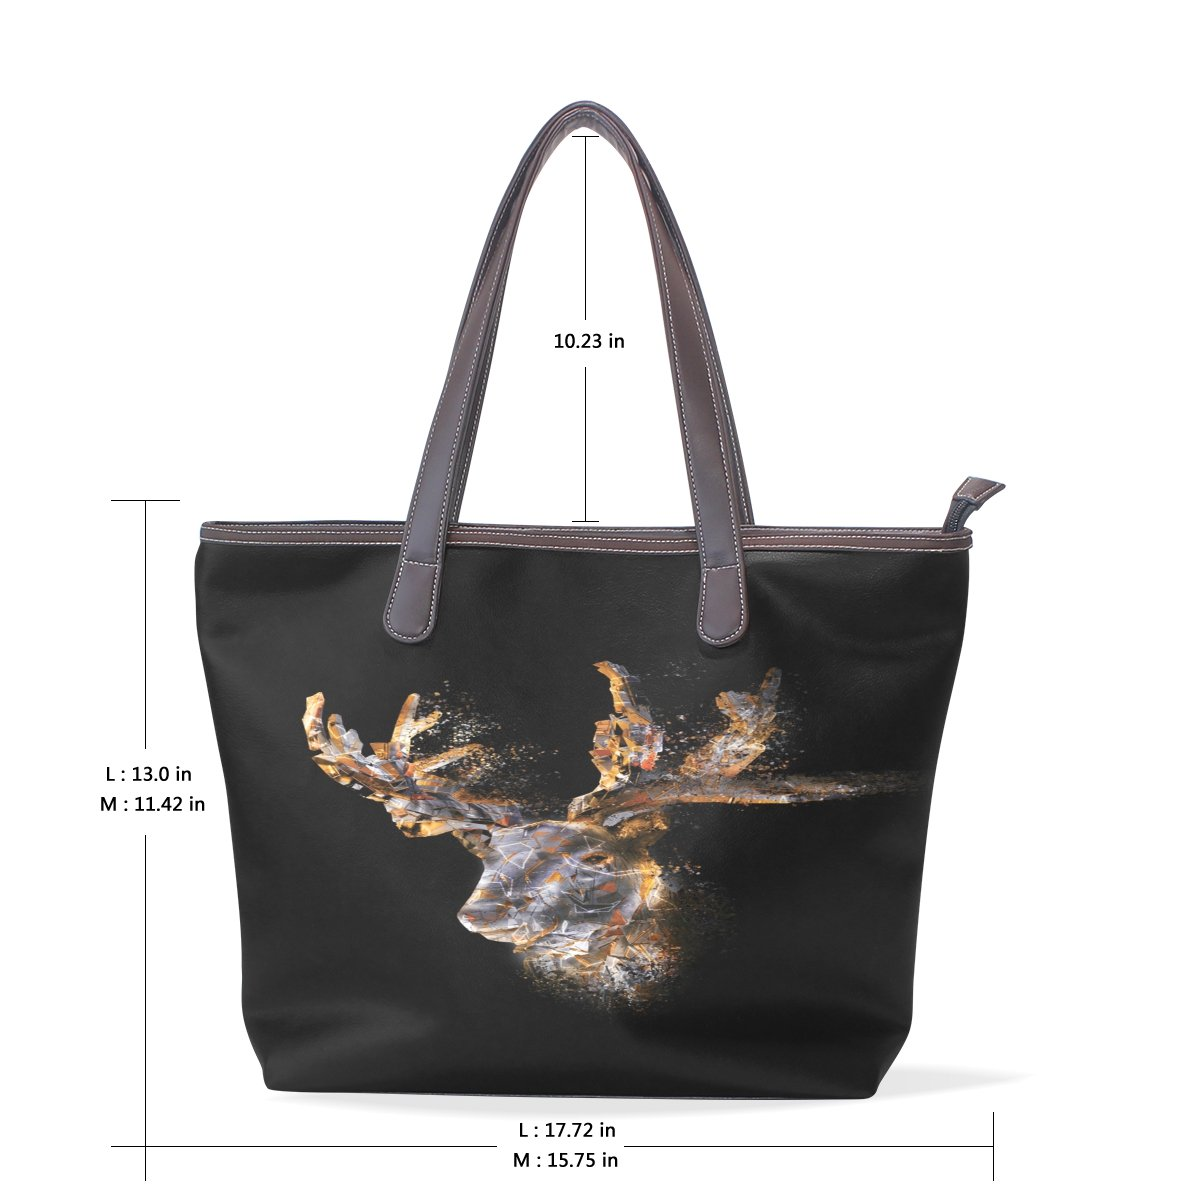 Mr.Weng Household Star Elk Lady Handbag Tote Bag Zipper Shoulder Bag